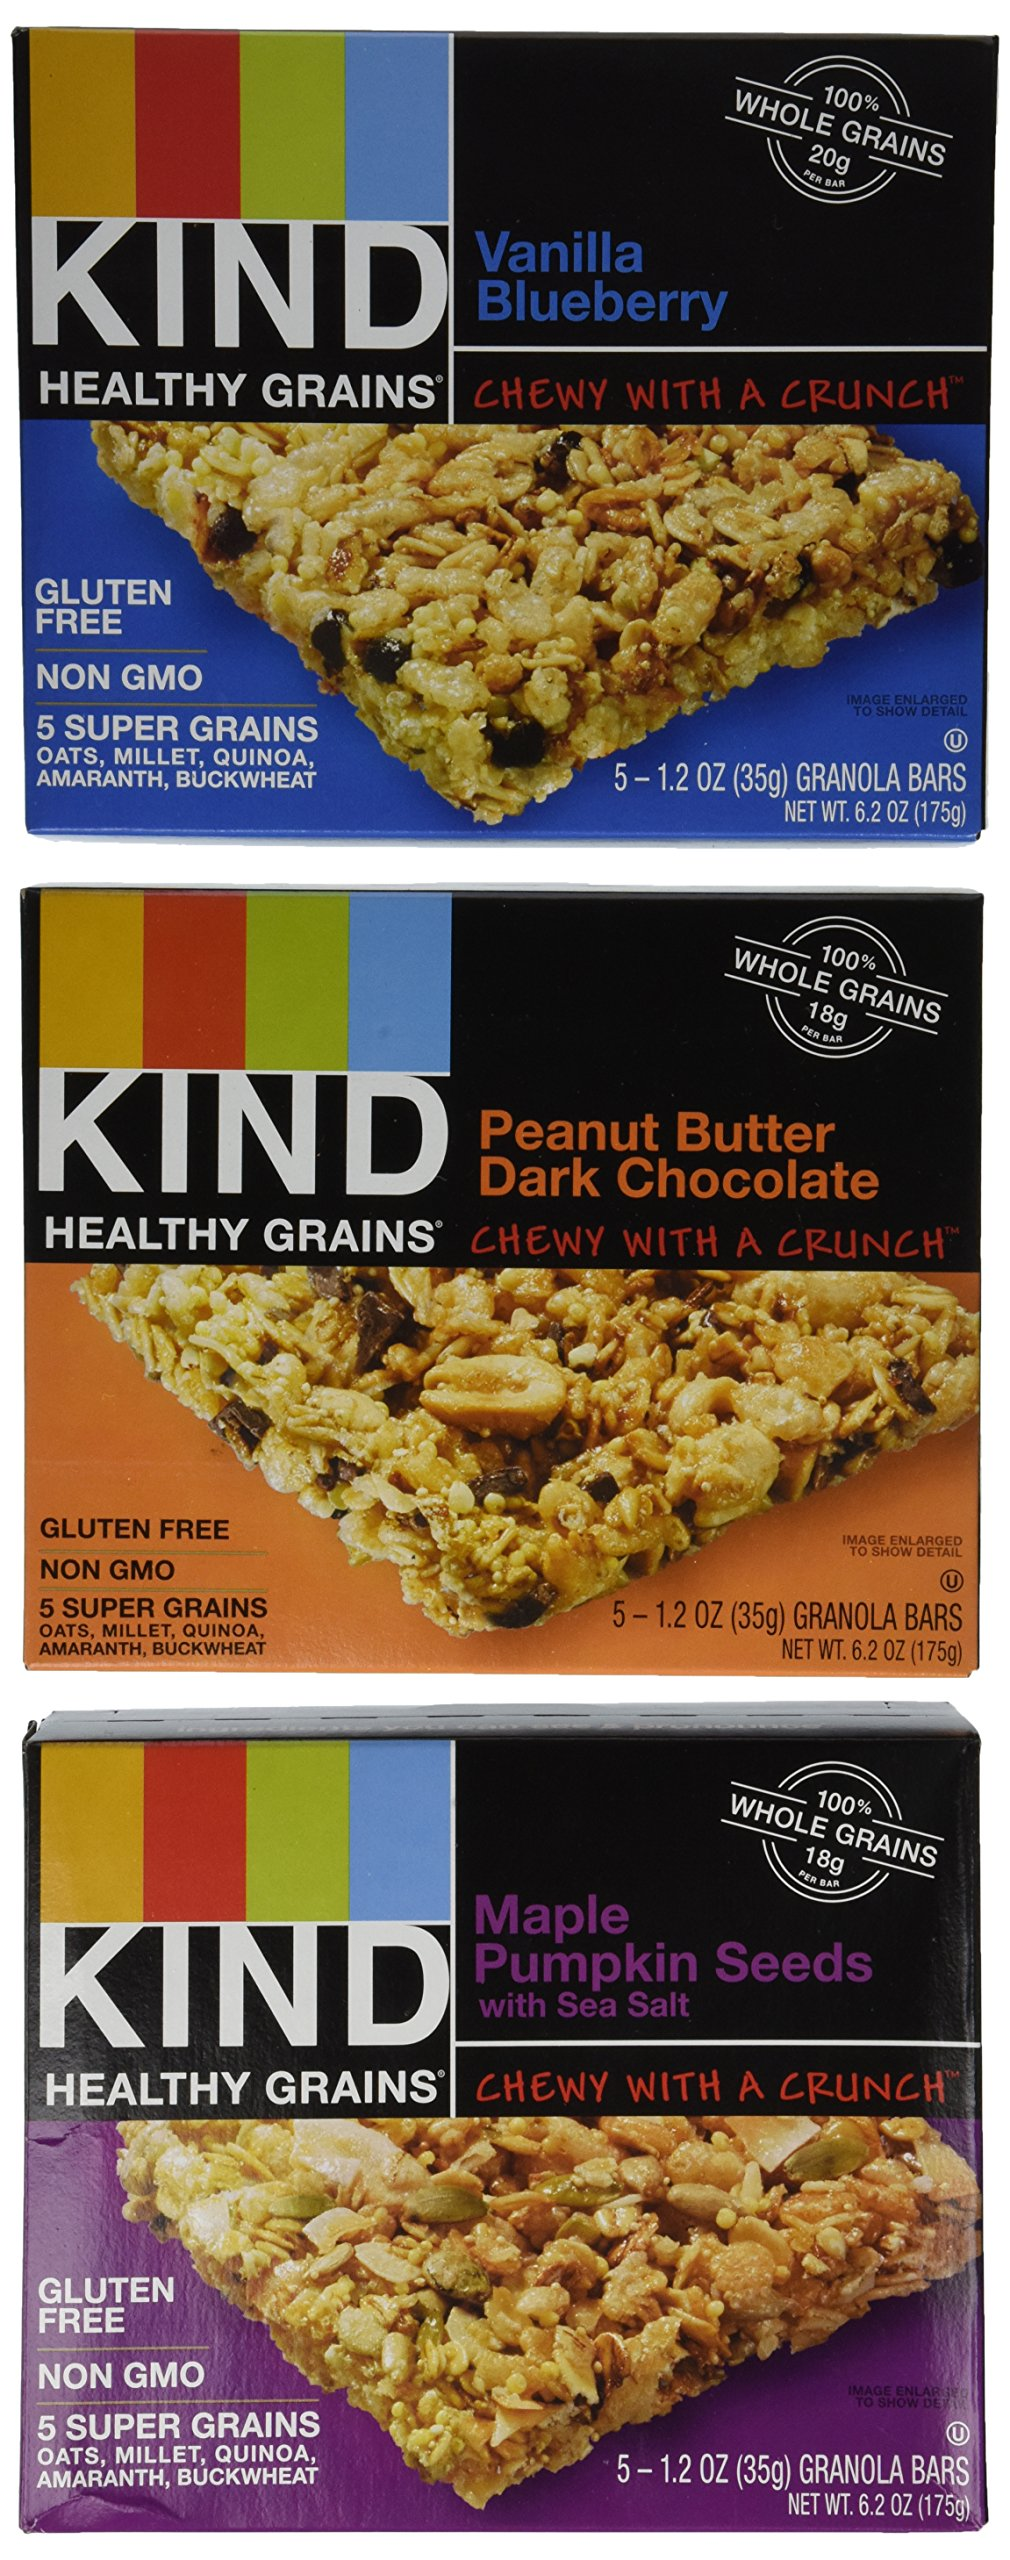 KIND Healthy Grains Granola Bars, Three Flavor Variety Pack, Gluten Free, 1.2oz Bars, 15 Count